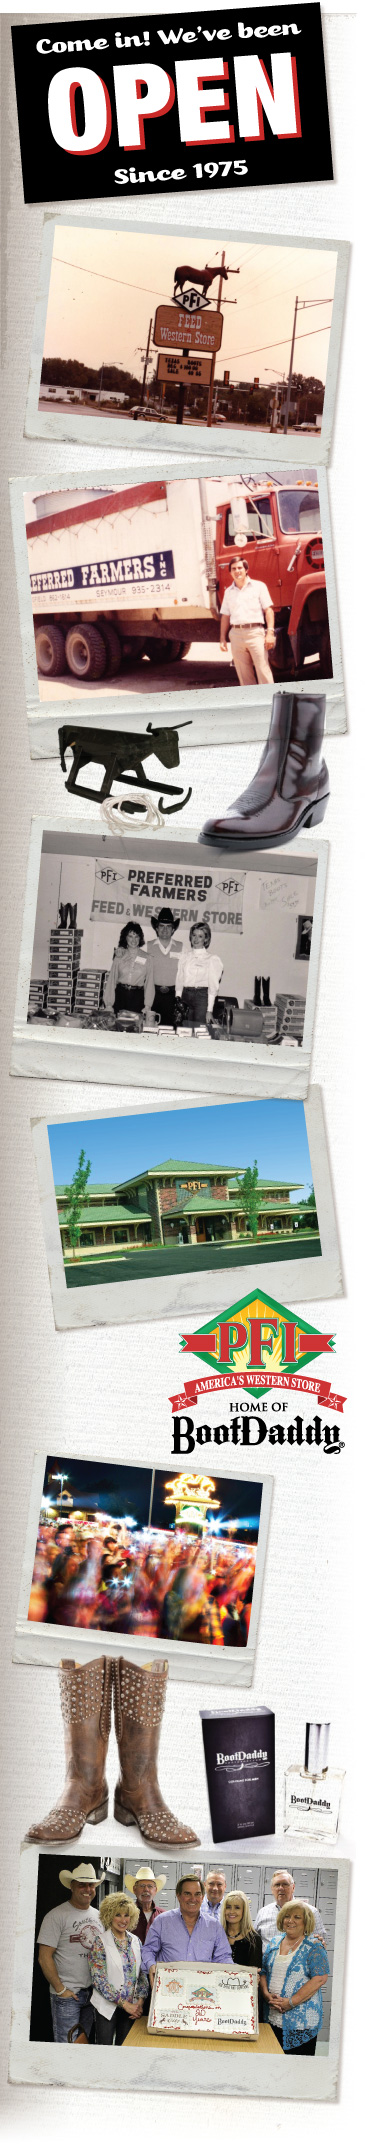 A history of PFI Western Store